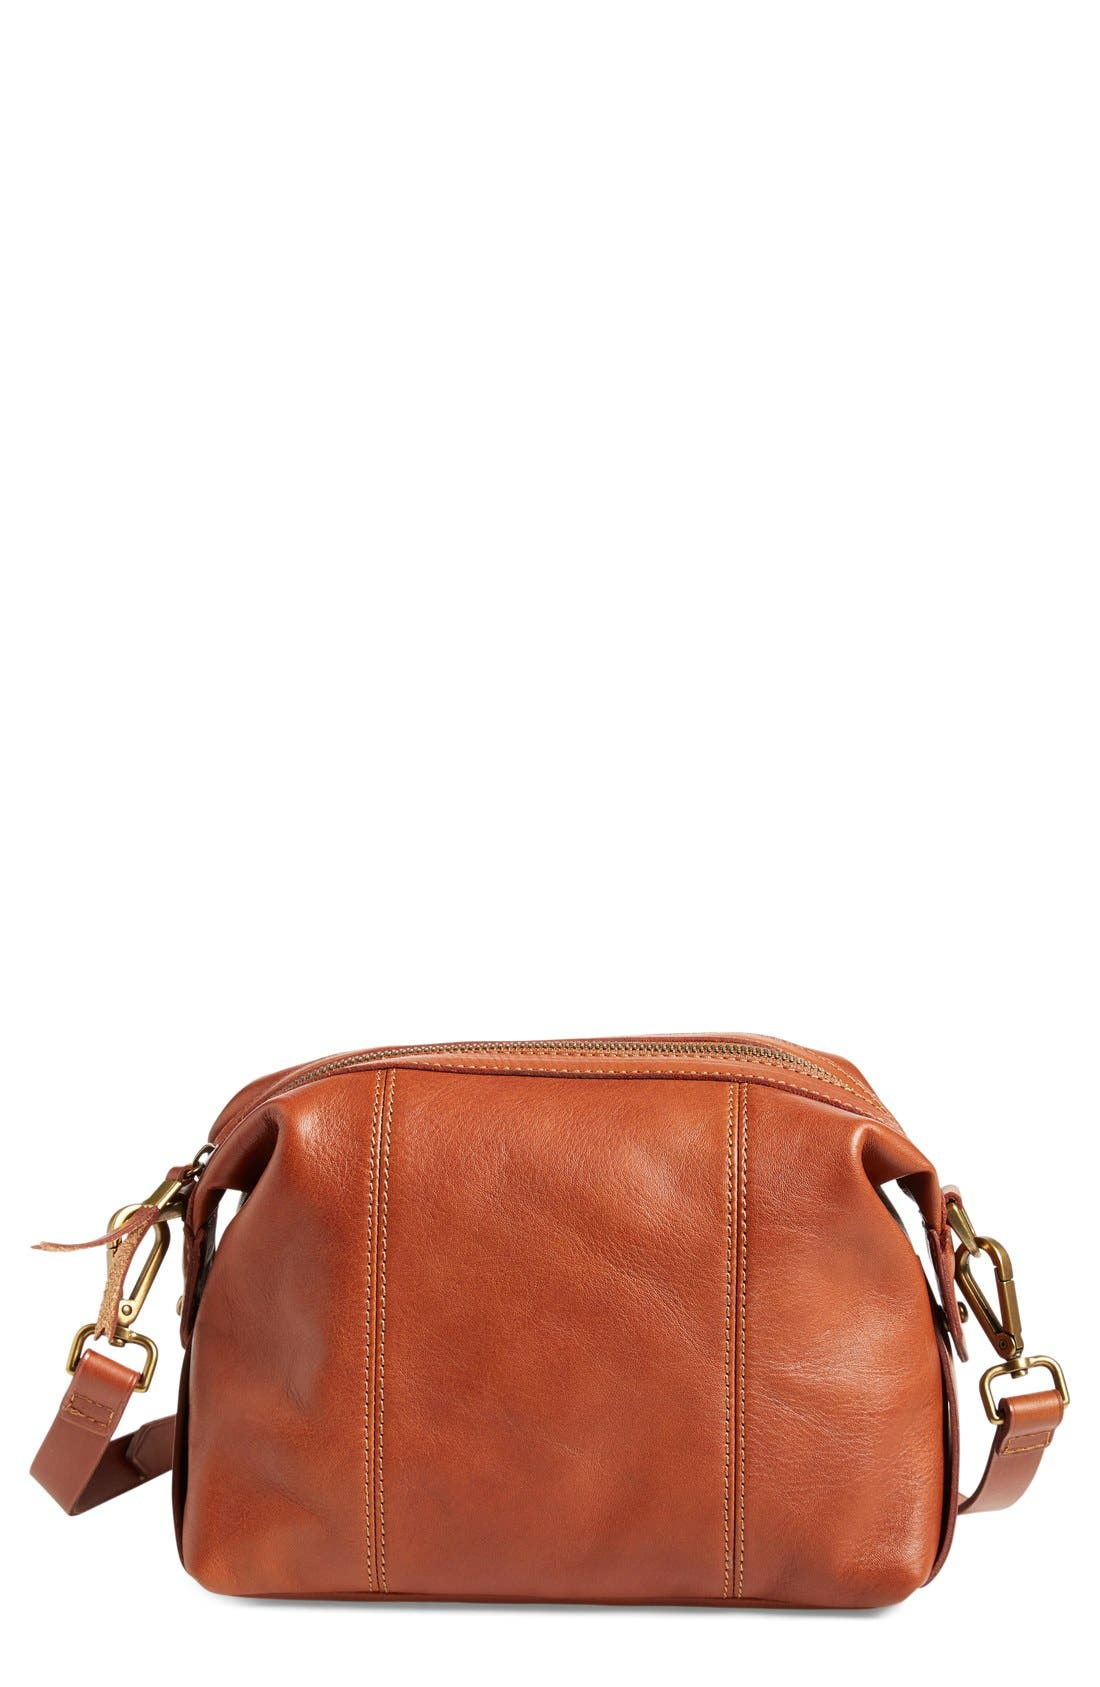 Alternate Image 1 Selected - Madewell 'Mini Glasgow' Leather Crossbody Bag